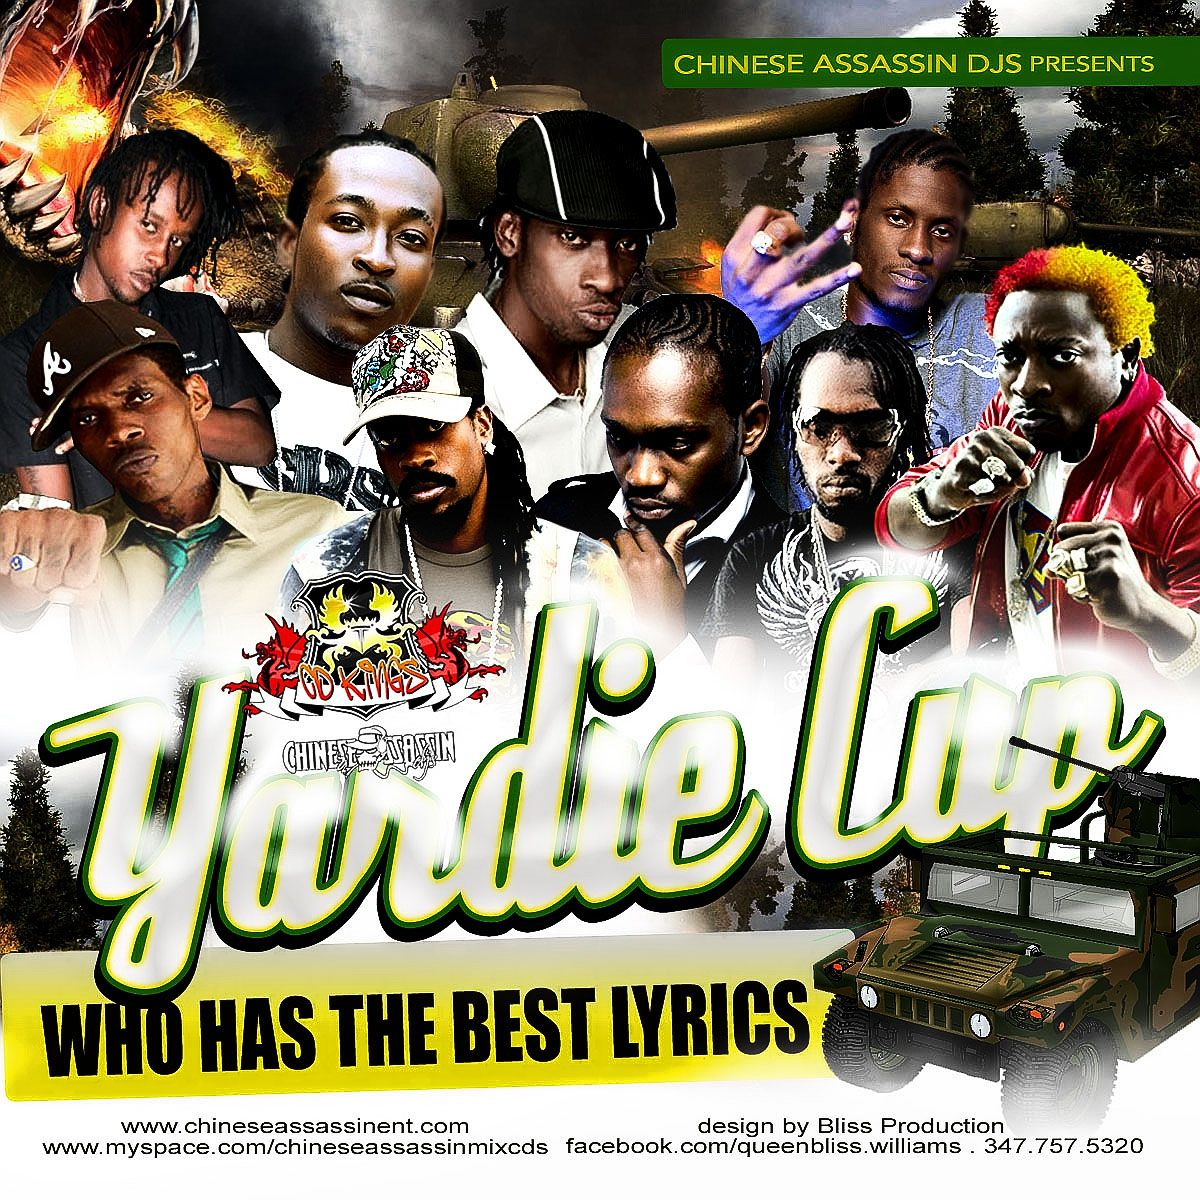 Lyrics containing the term: yardie